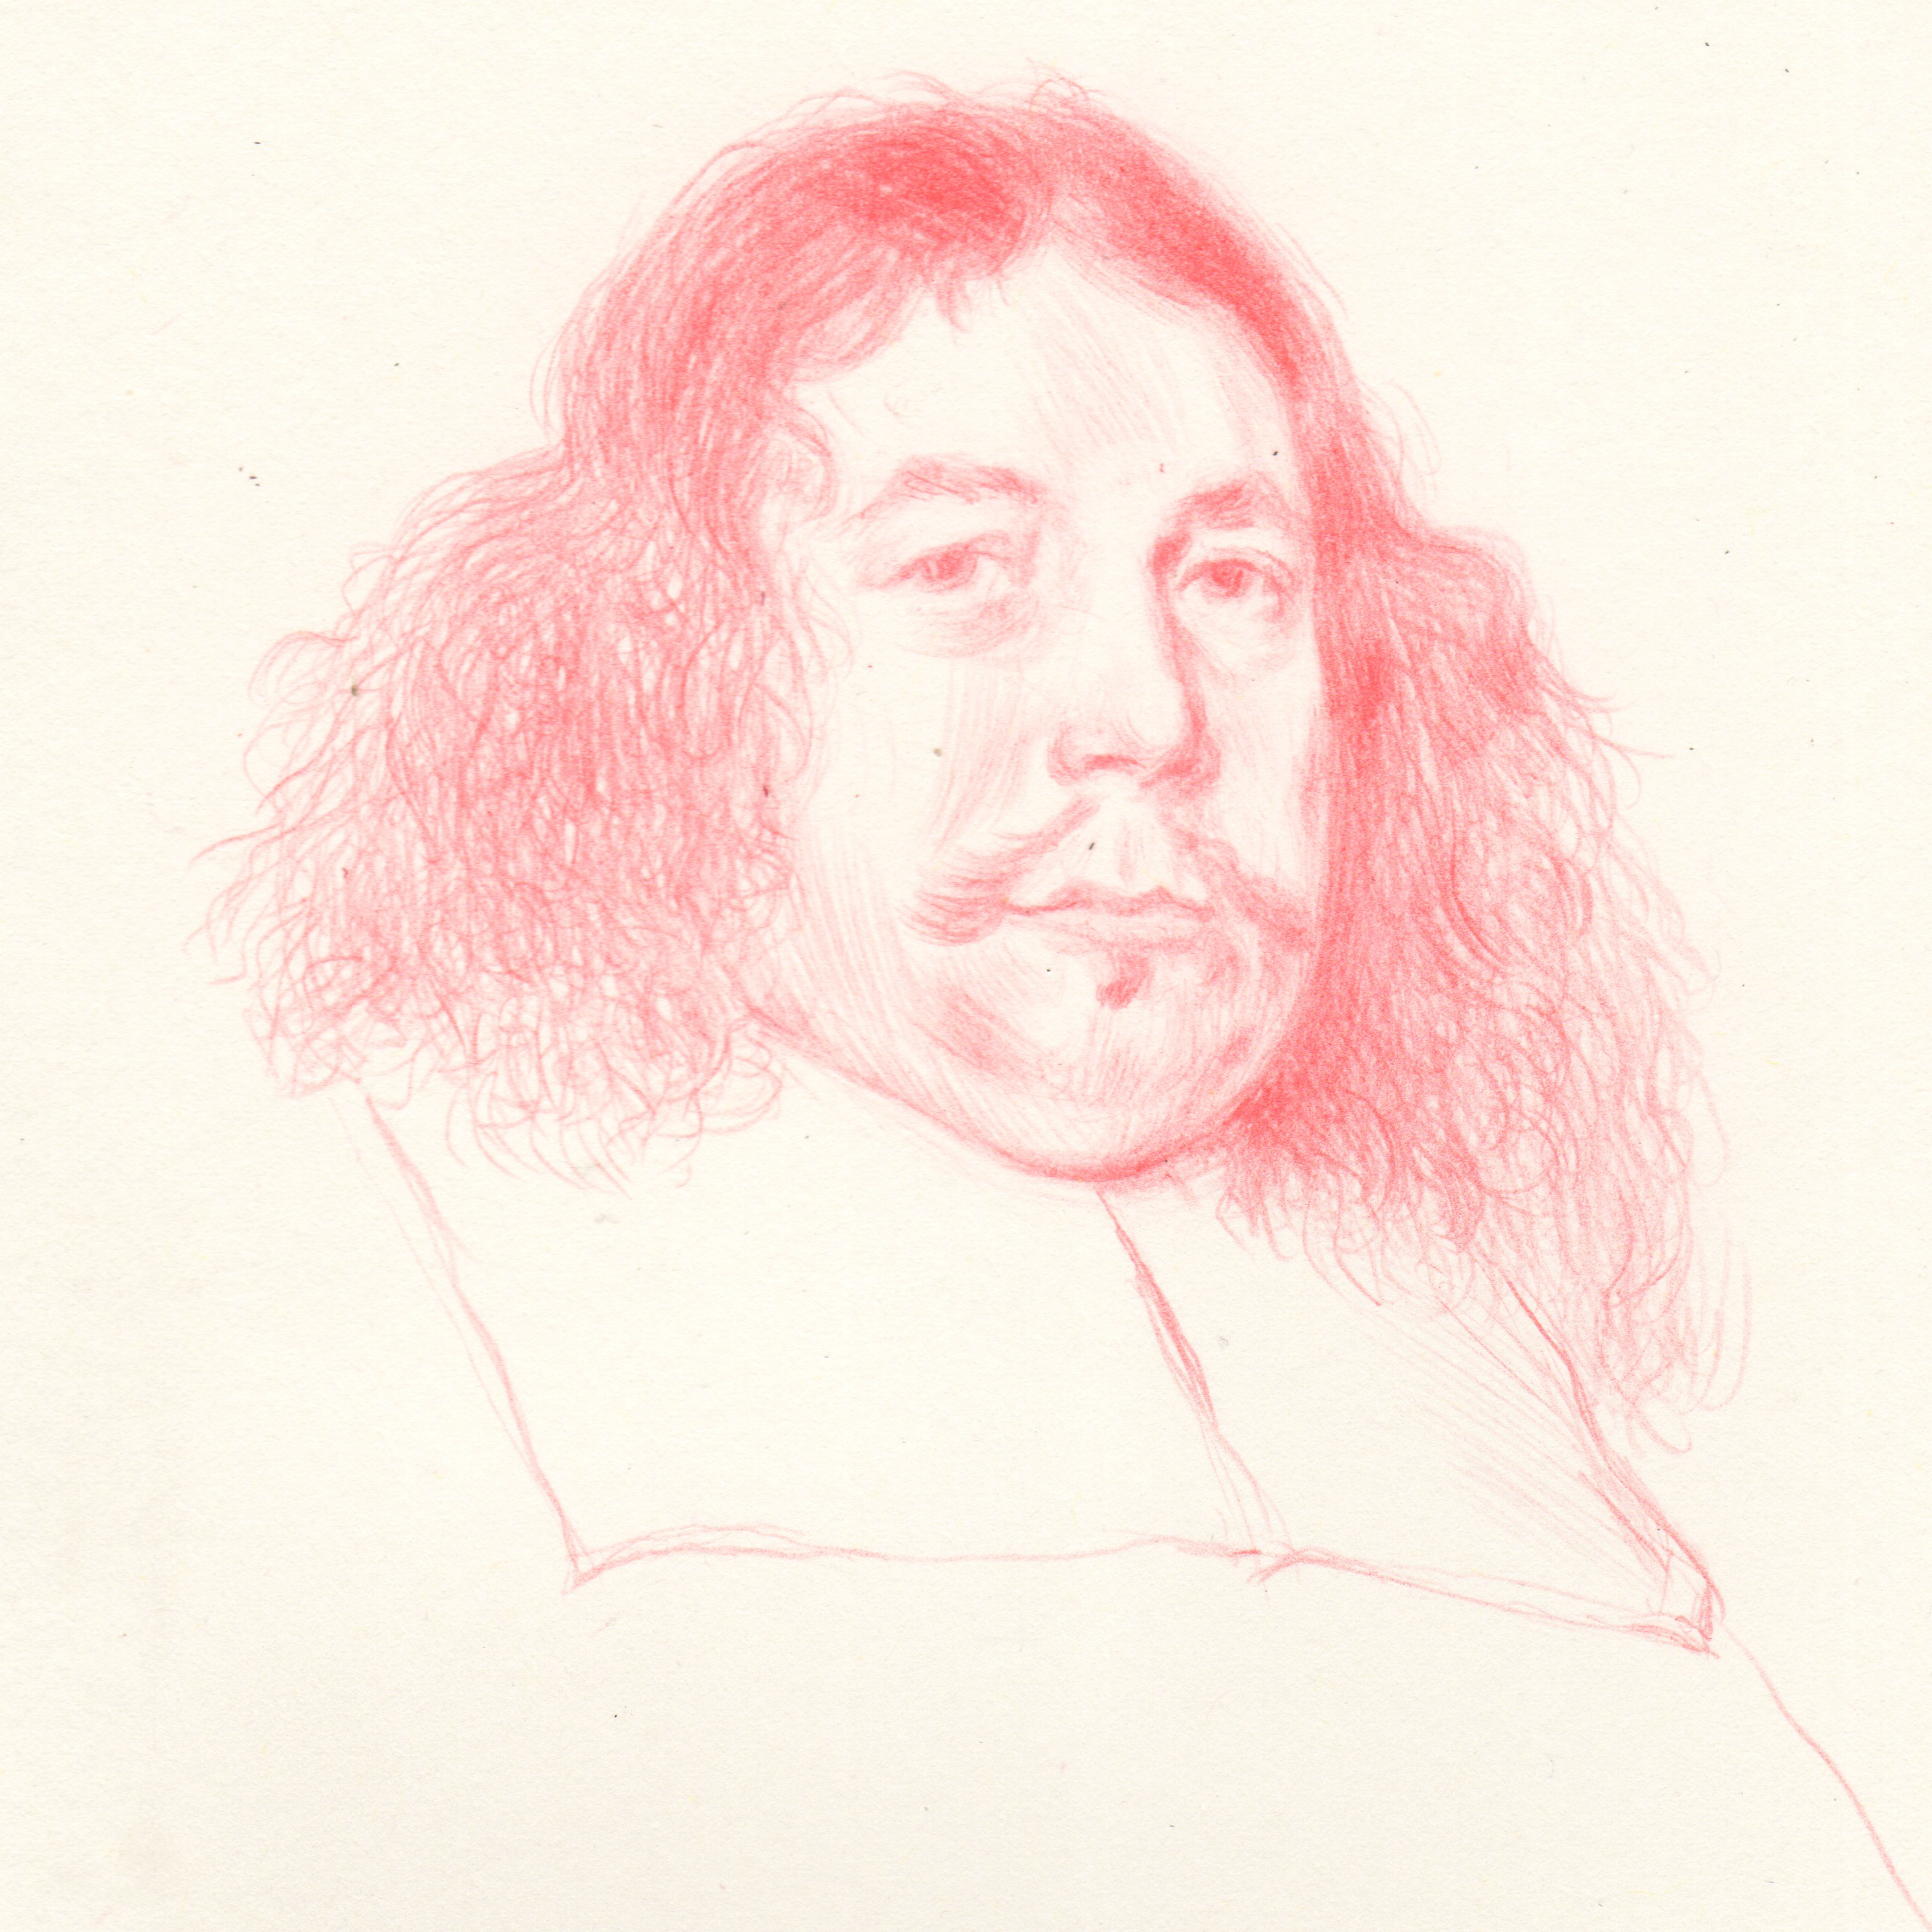 Drawing of Burgomaster portrait after Borch masterpiece